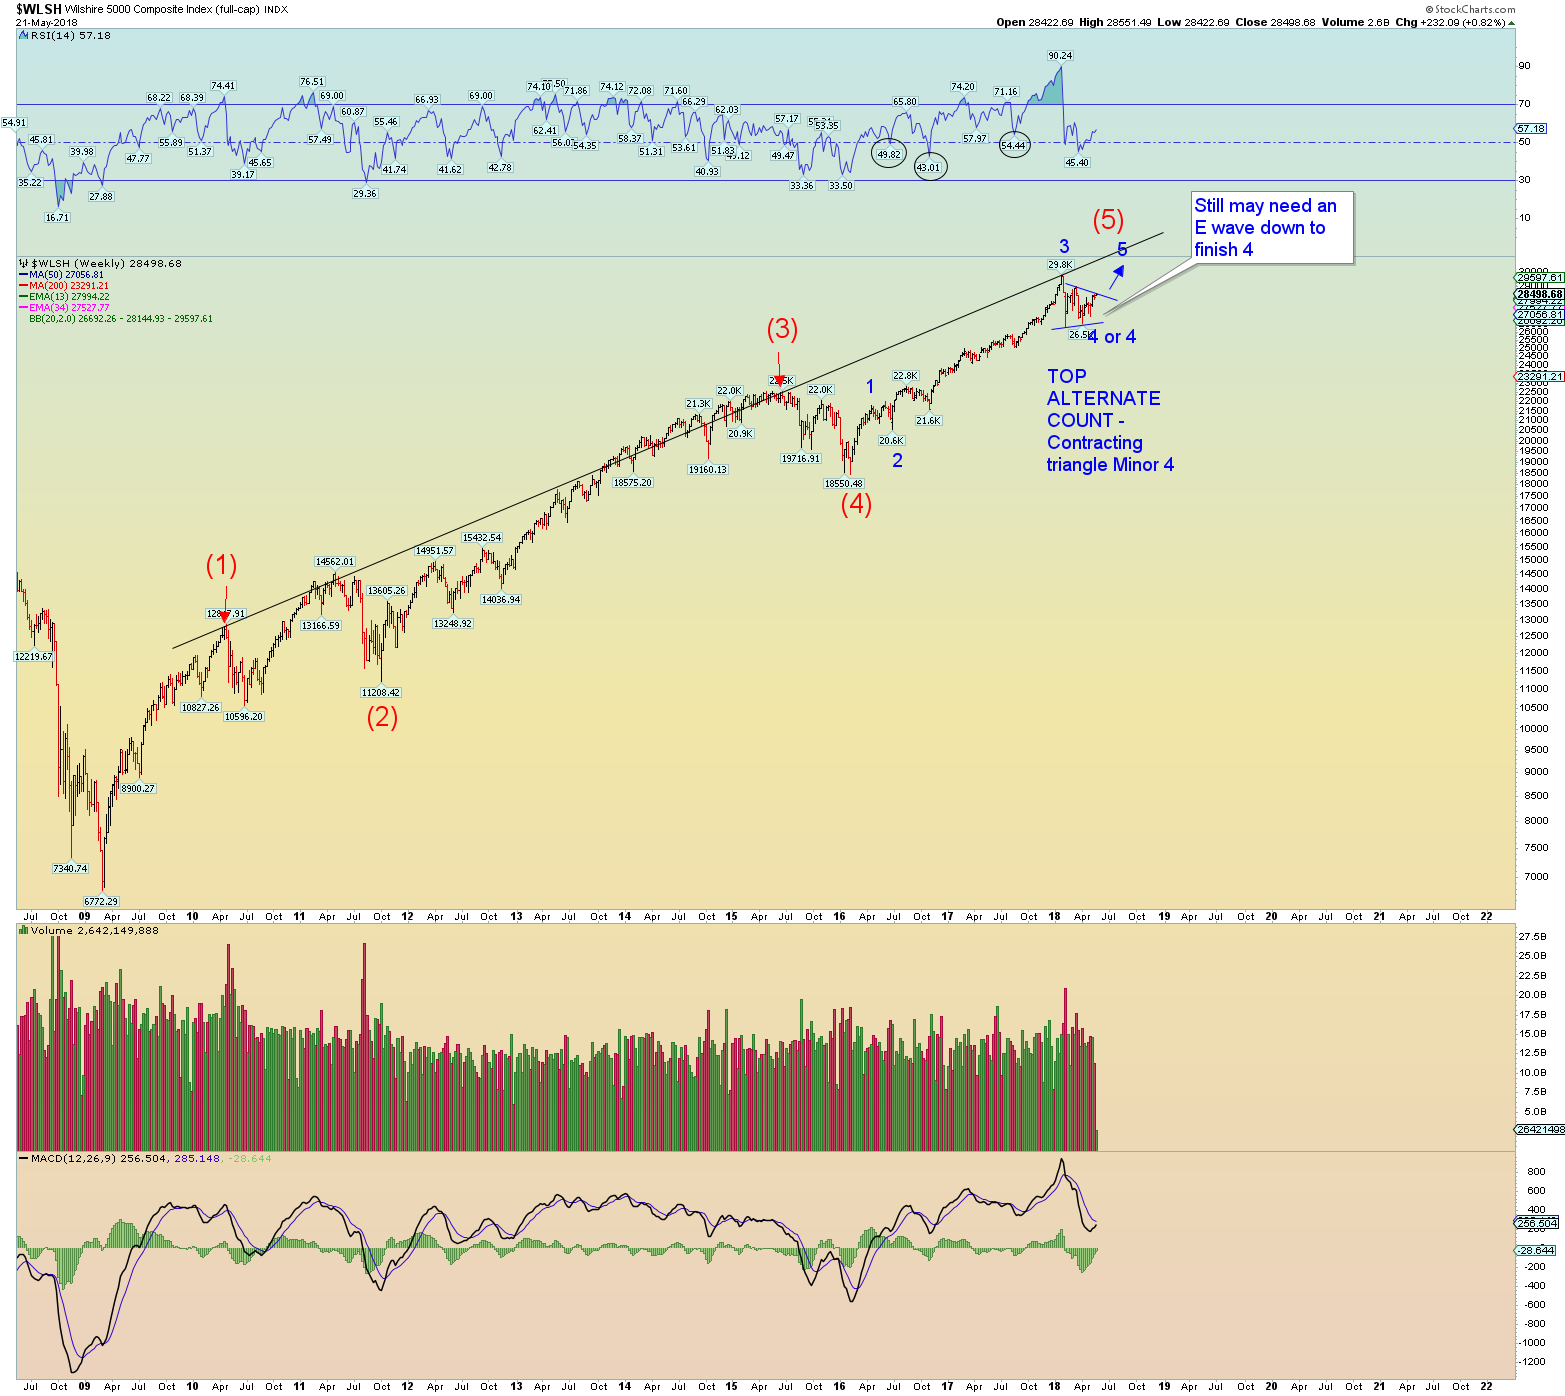 Consolidating markets and the elliott wave